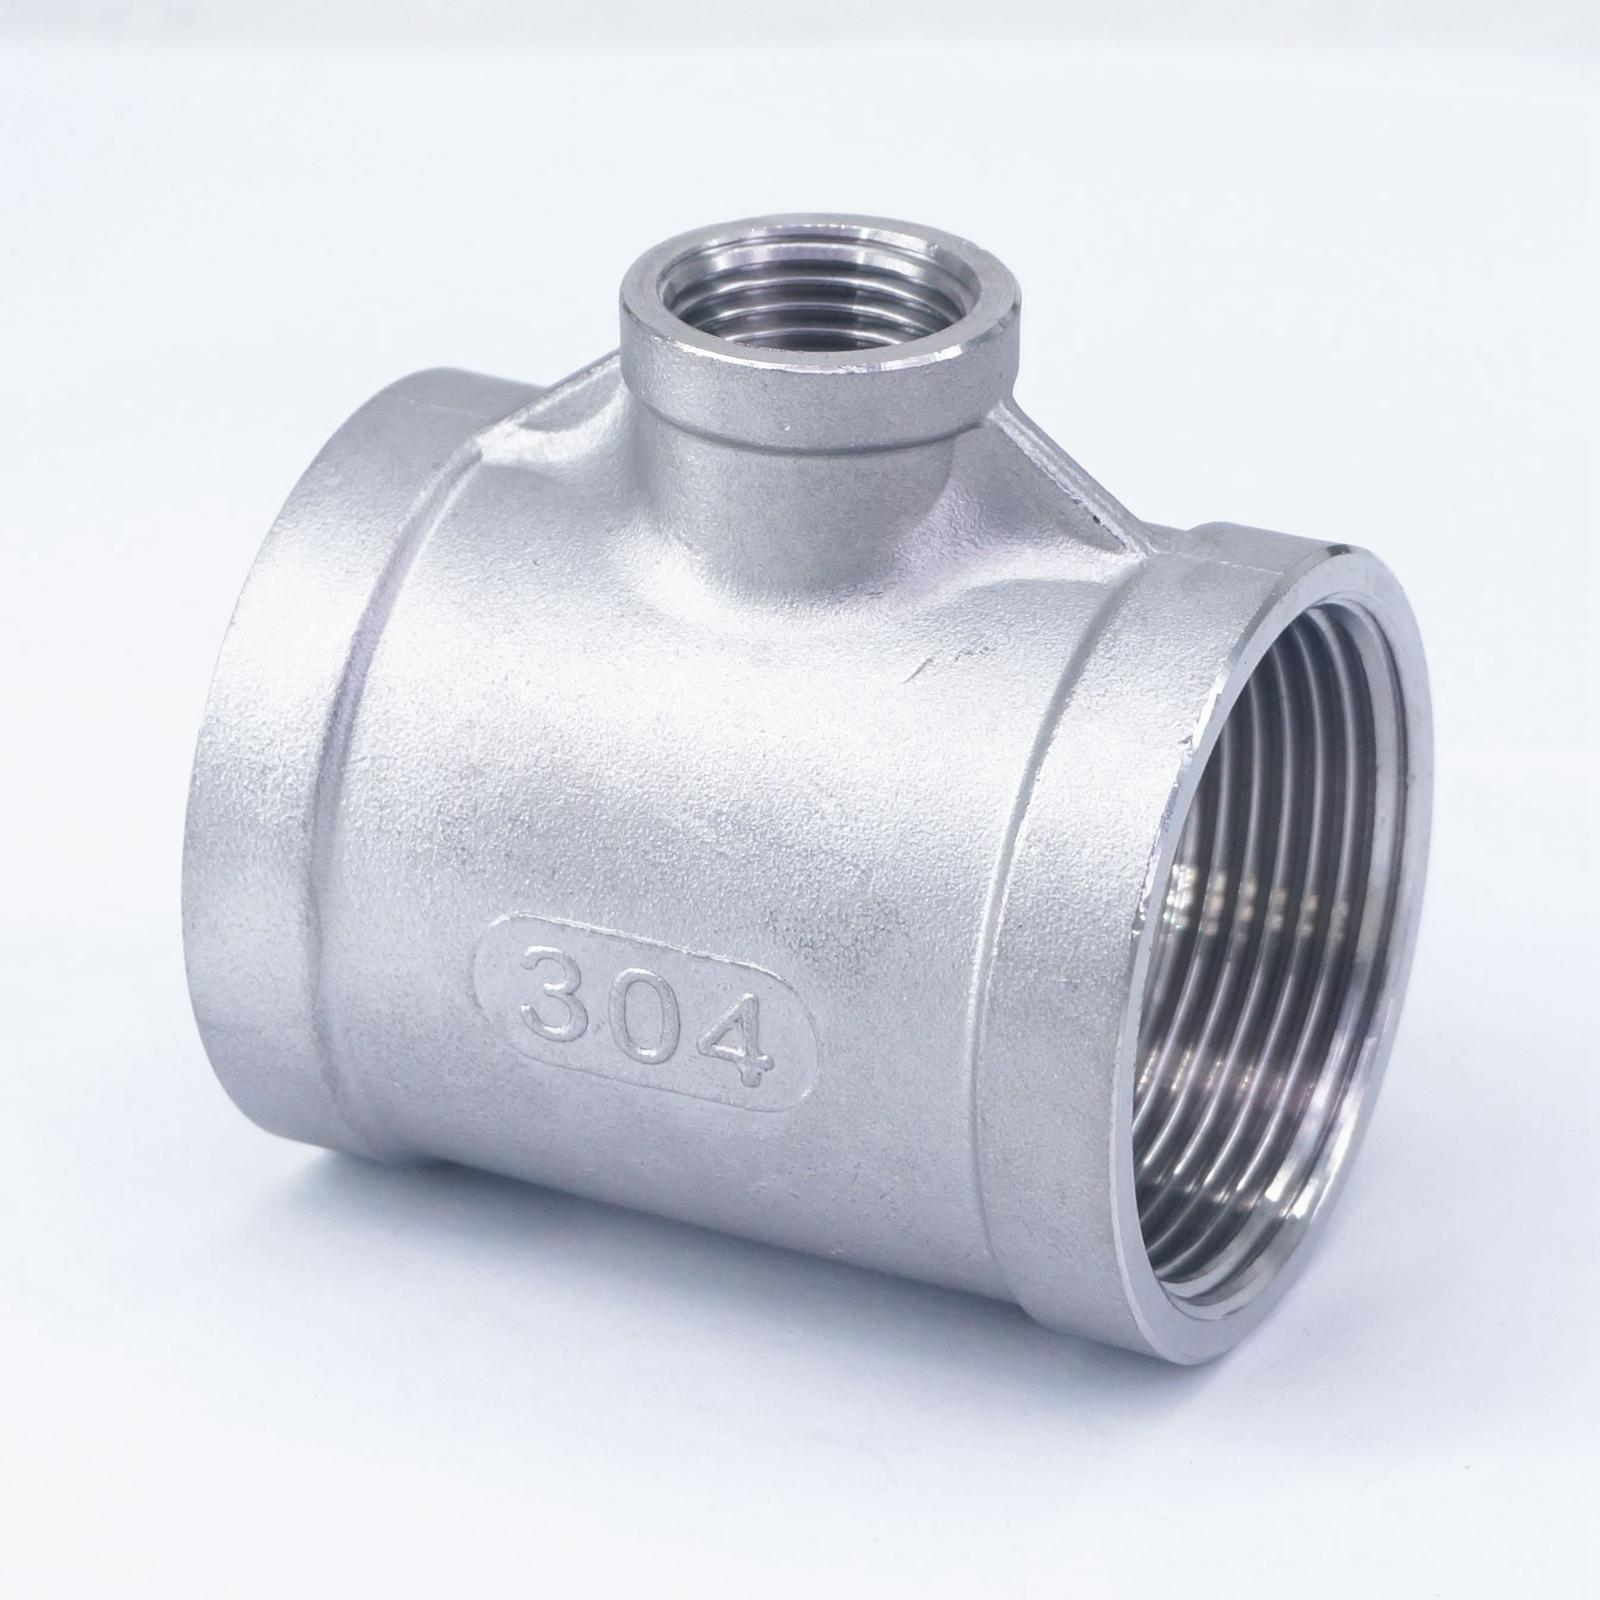 1/2 BSP To 1-1/2 BSP Female Thread 304 Stainless Reducing Tee 3 Way Connector Pipe Fitting water oil air cnz hosetail connector fitting barbed female bsp 1 1 2 inch thread set of 2